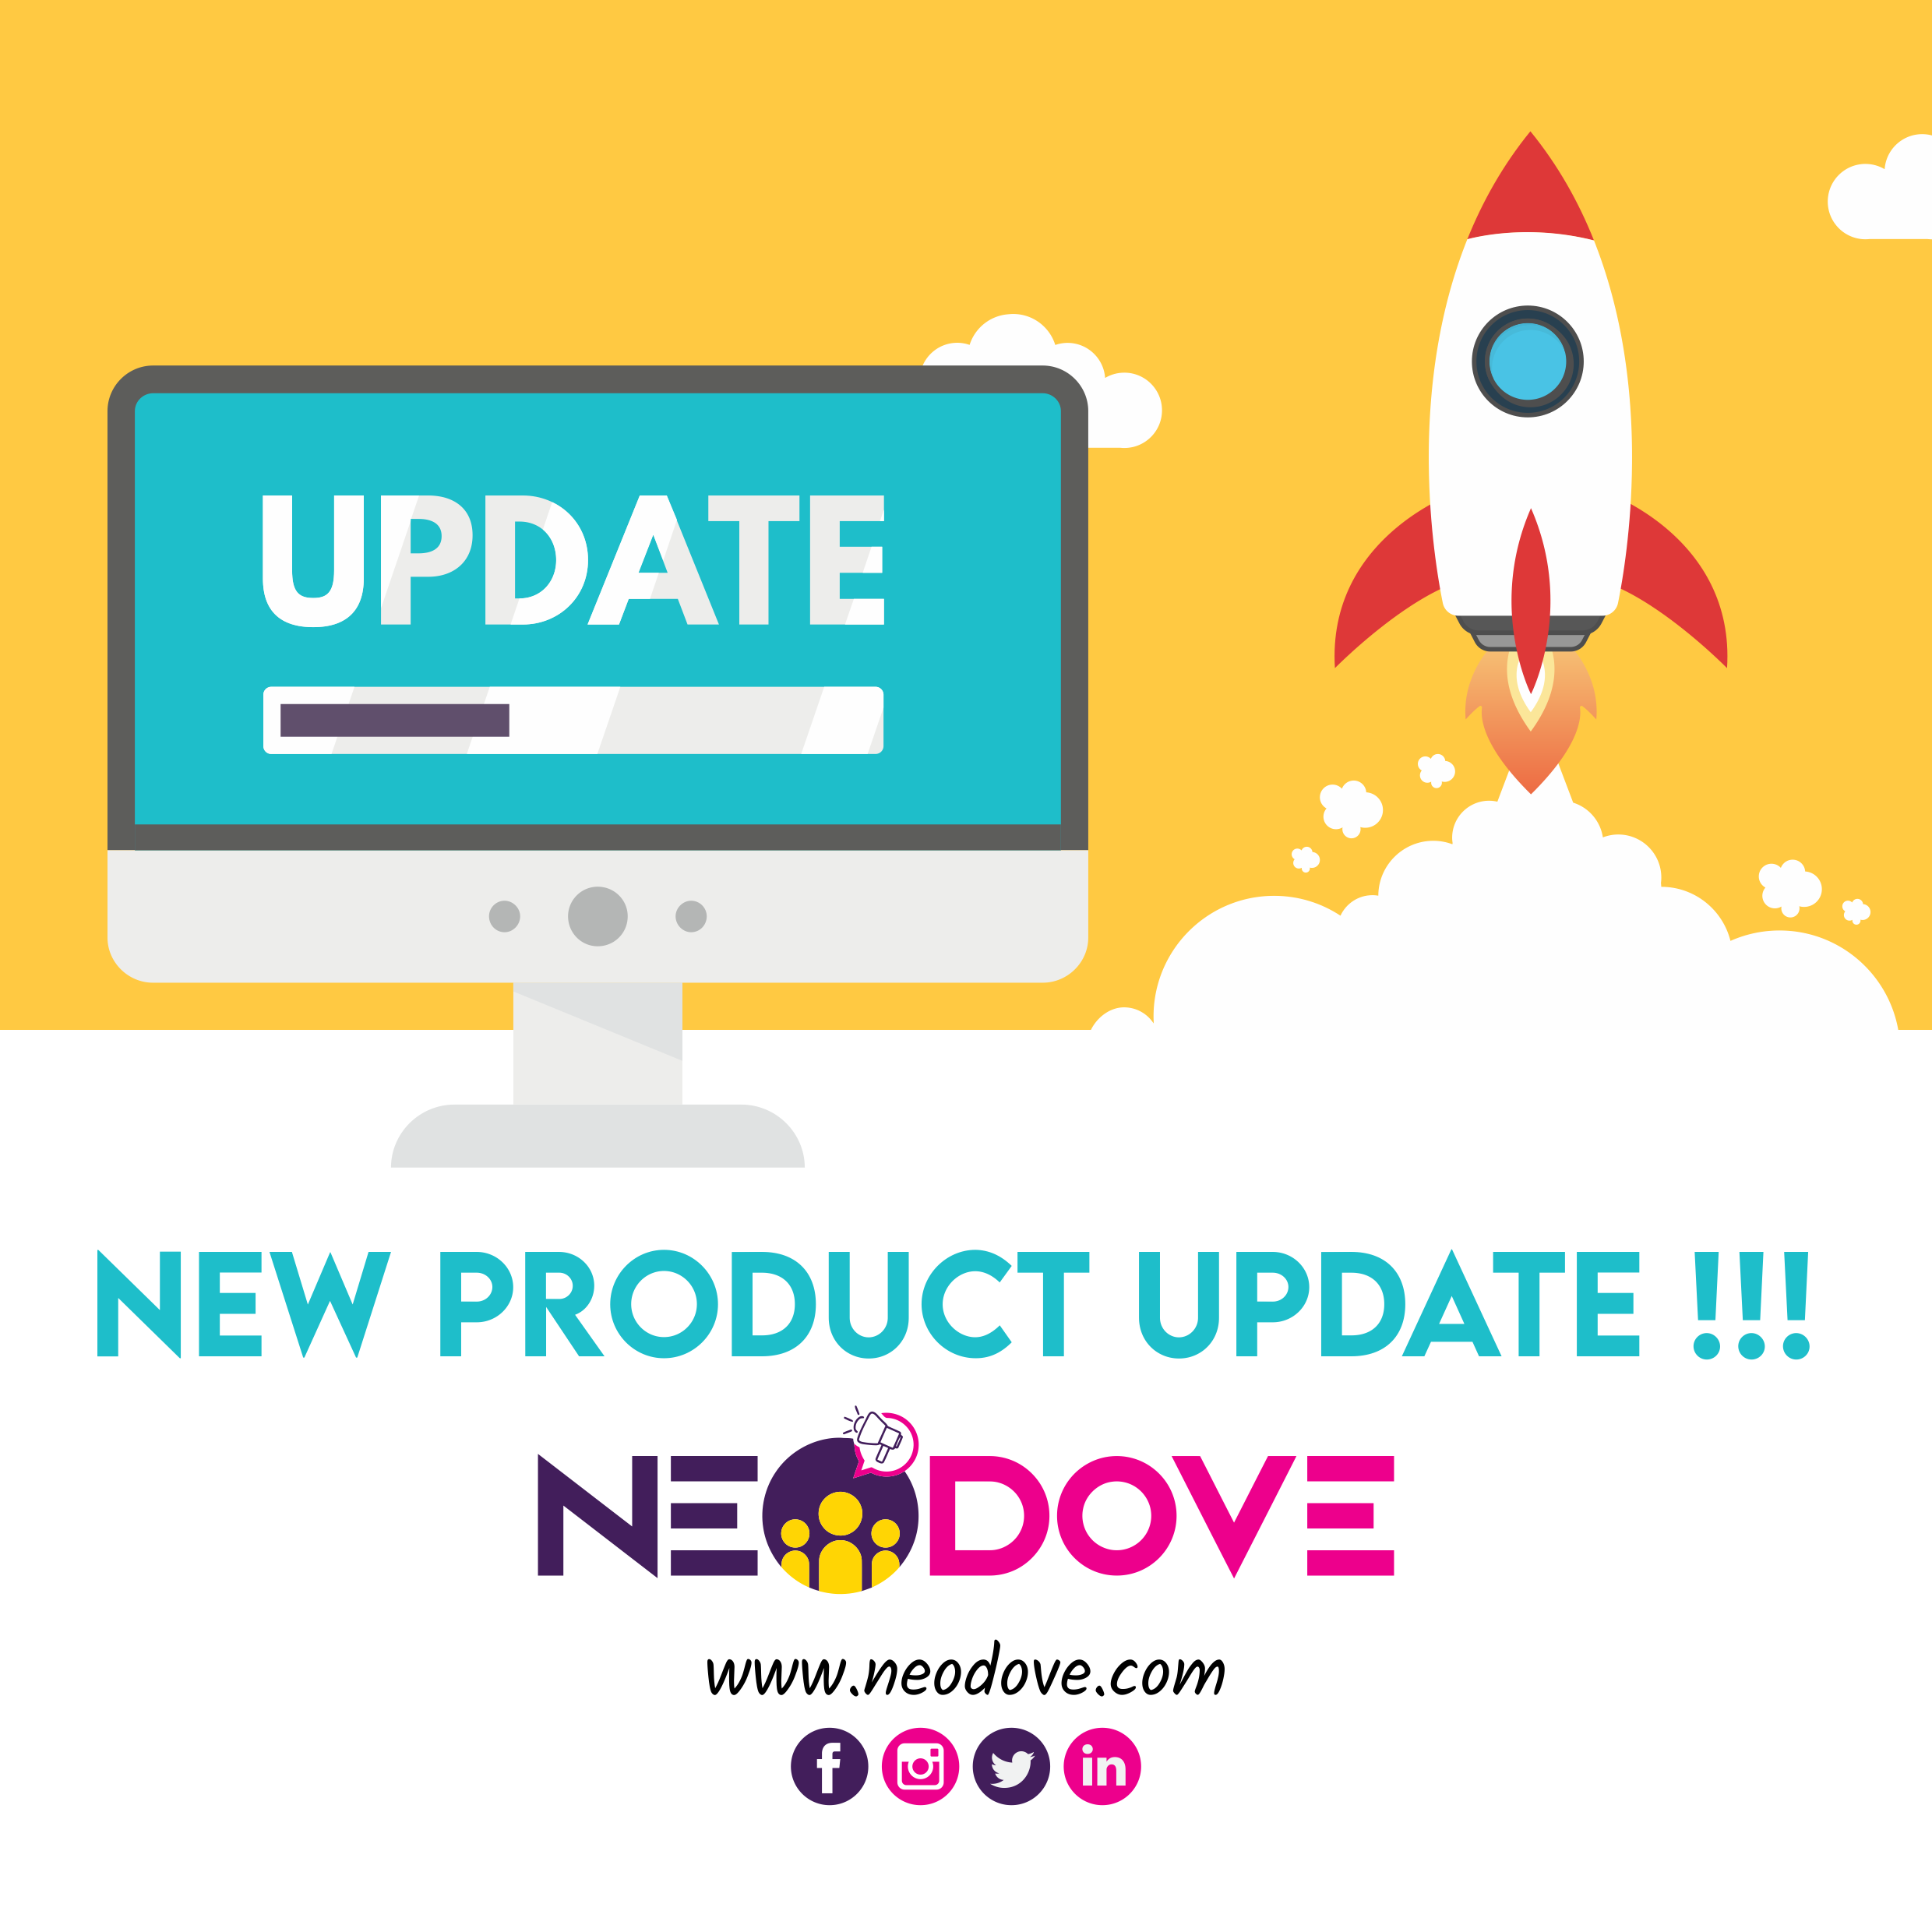 new product update